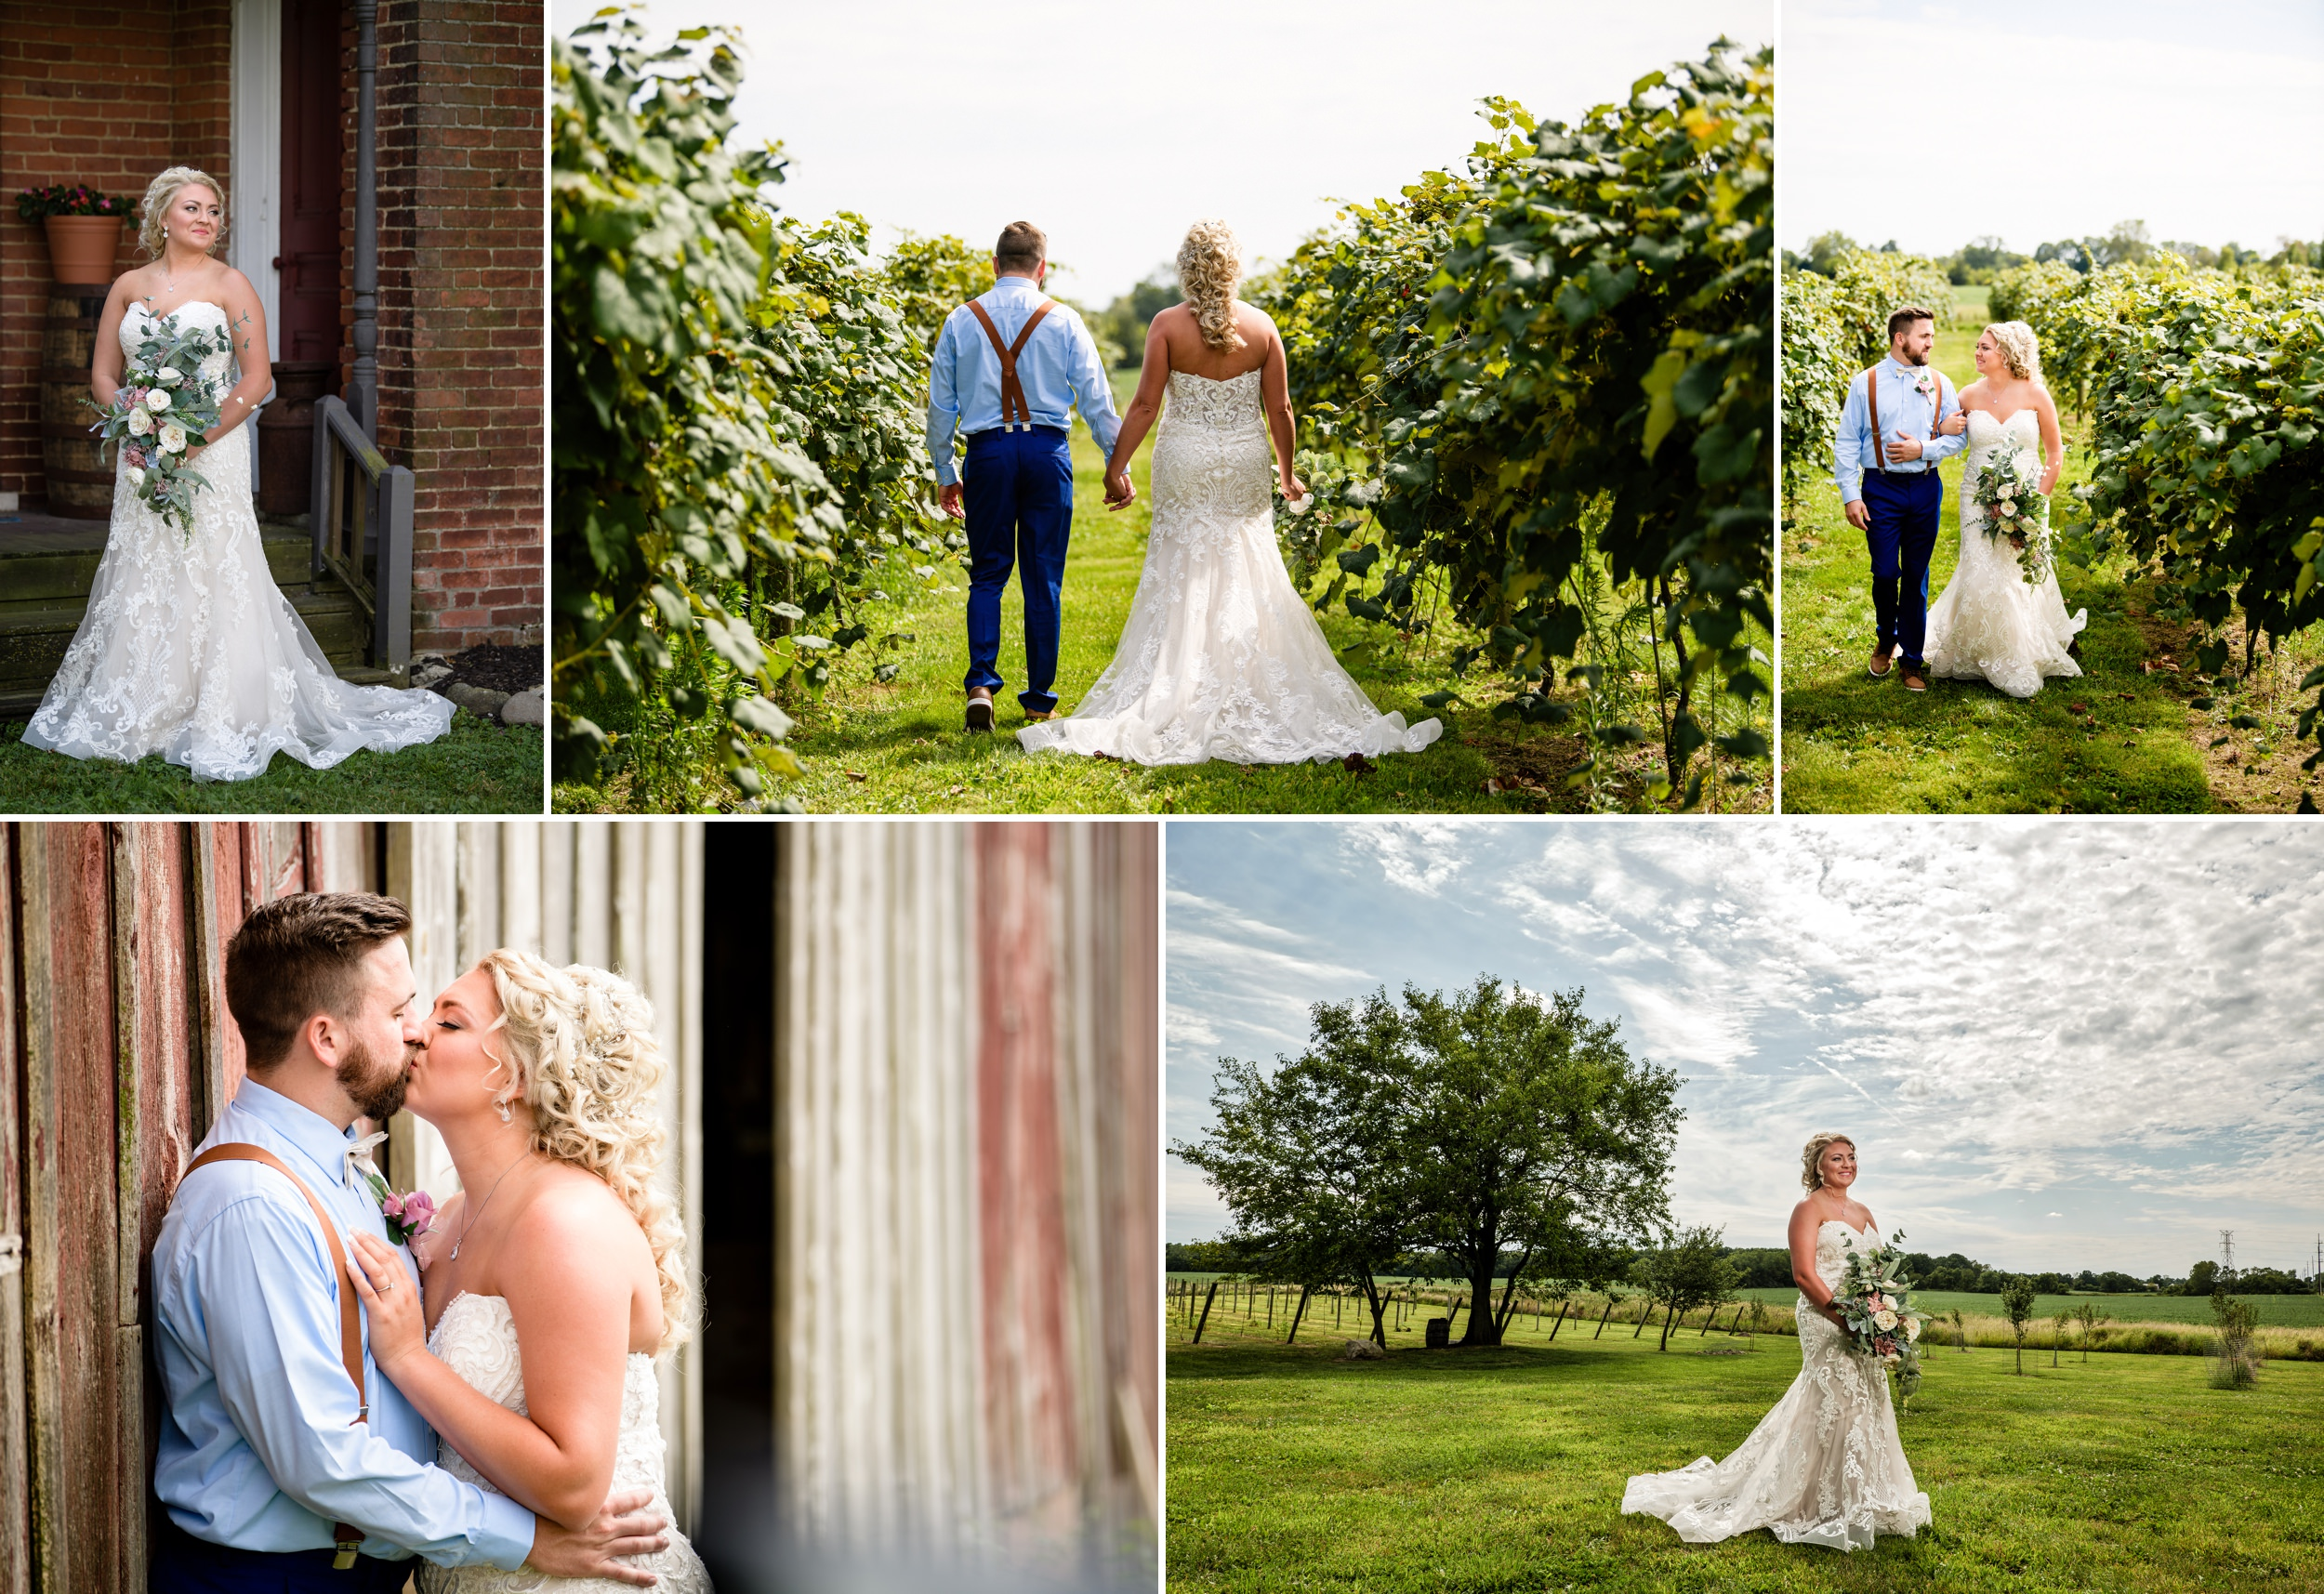 Wedding photos at Four Corners Winery in Valparaiso, Indiana.